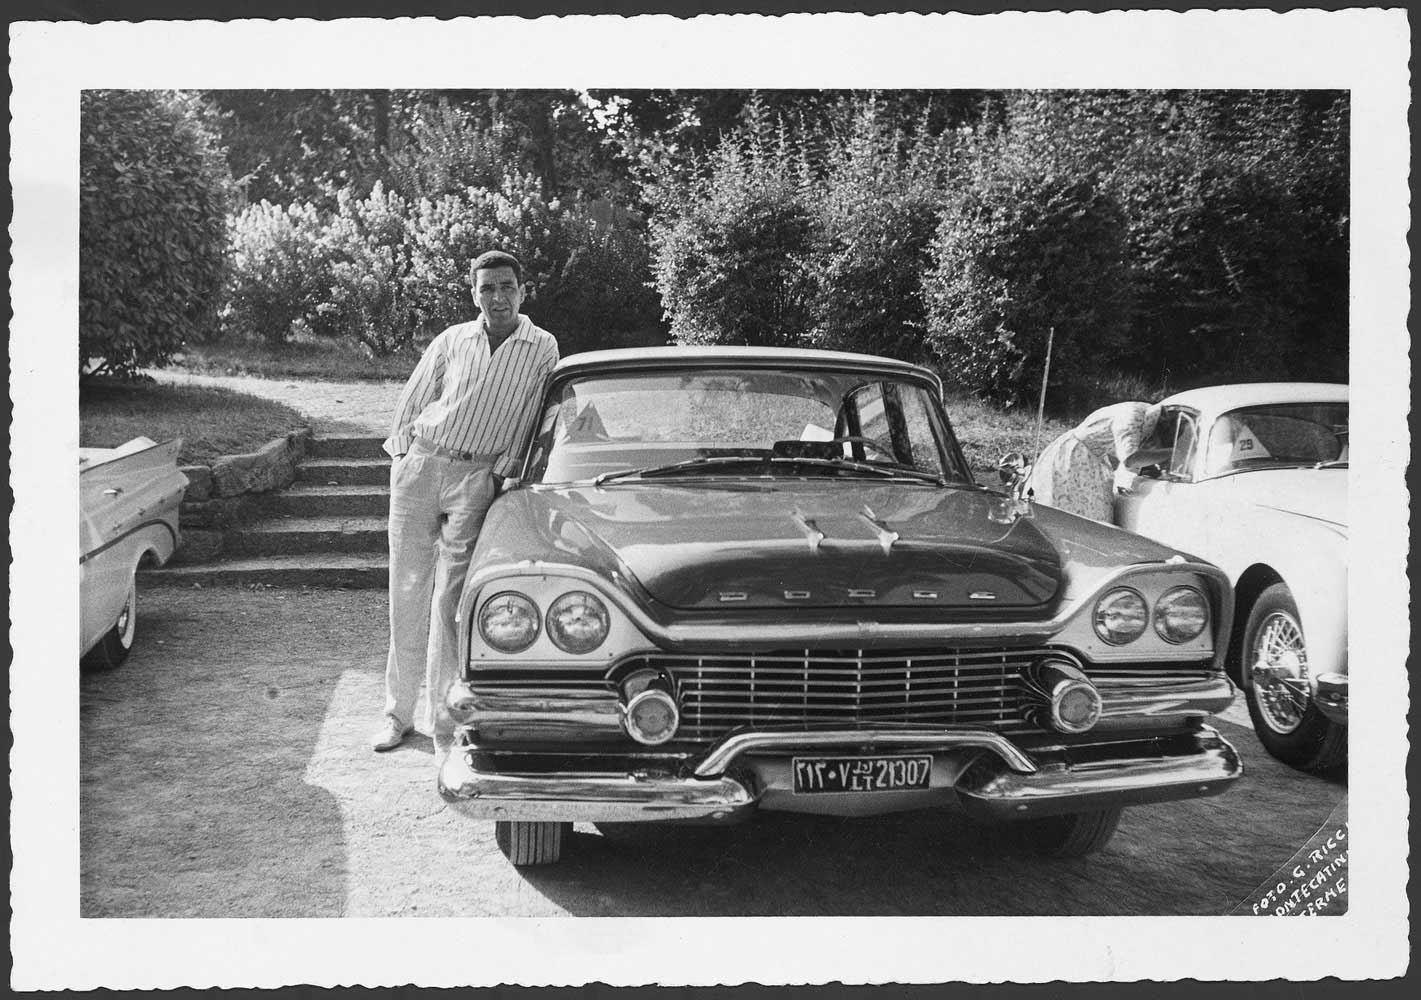 Mohamed Nga with his car - purchased on a U.S. military base in Tripoli - which he later entered in car shows